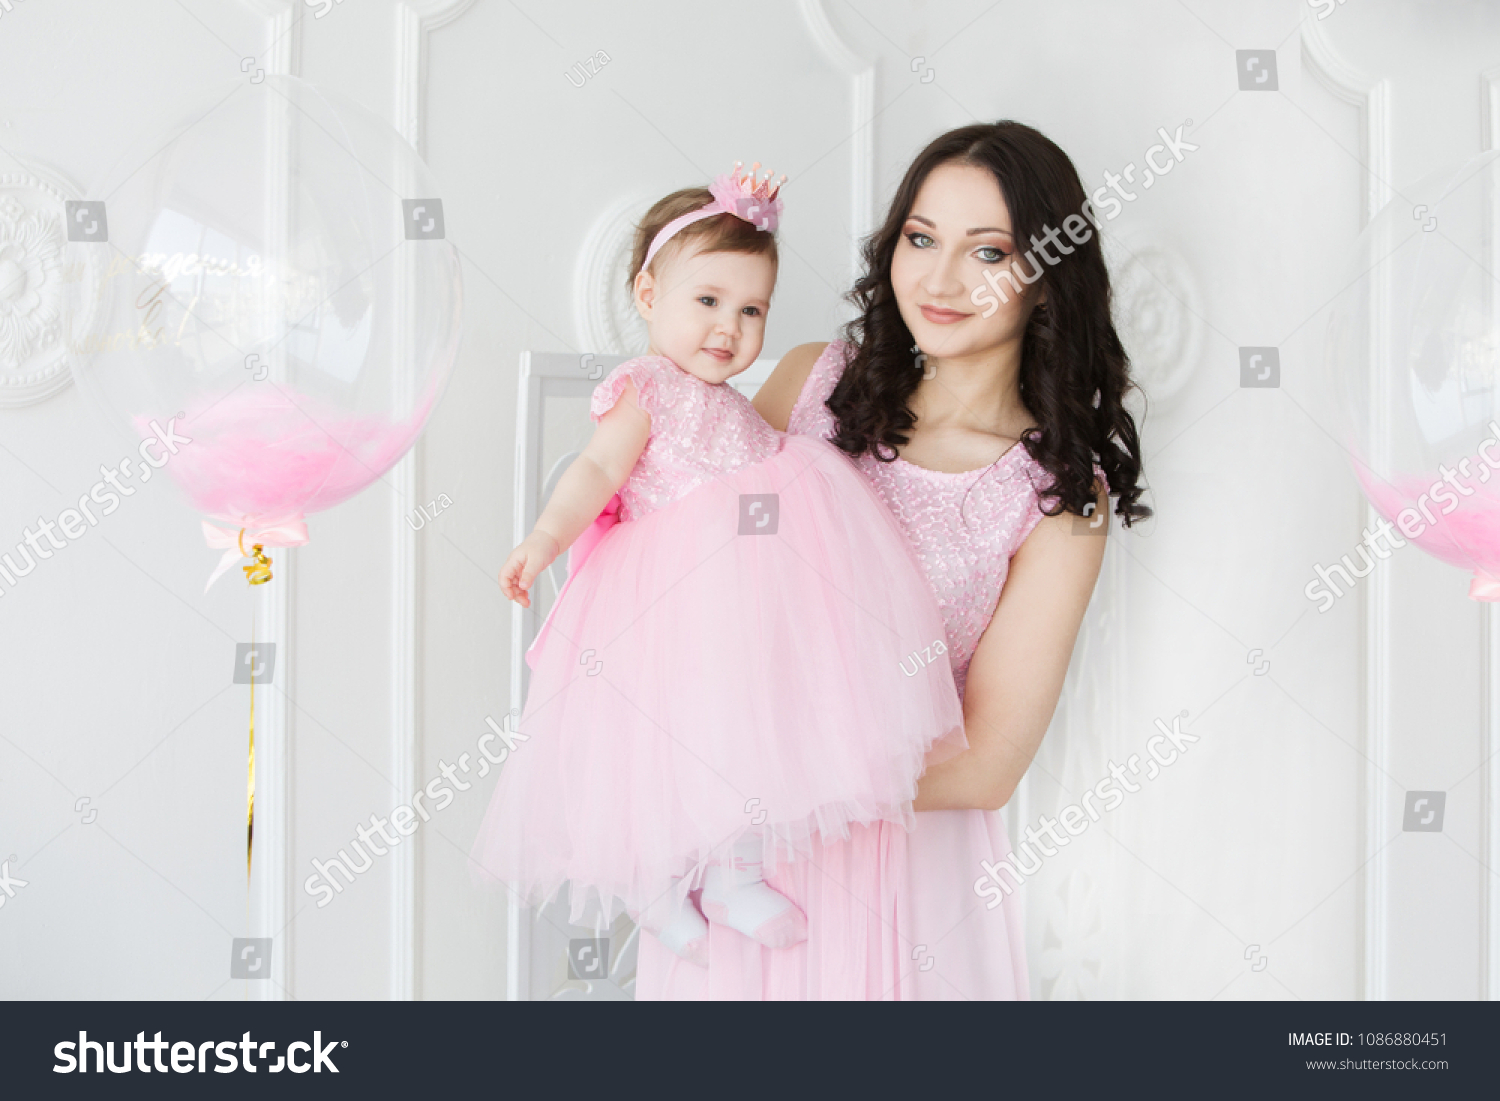 Birthday Party Dress For Baby Girl And Mom